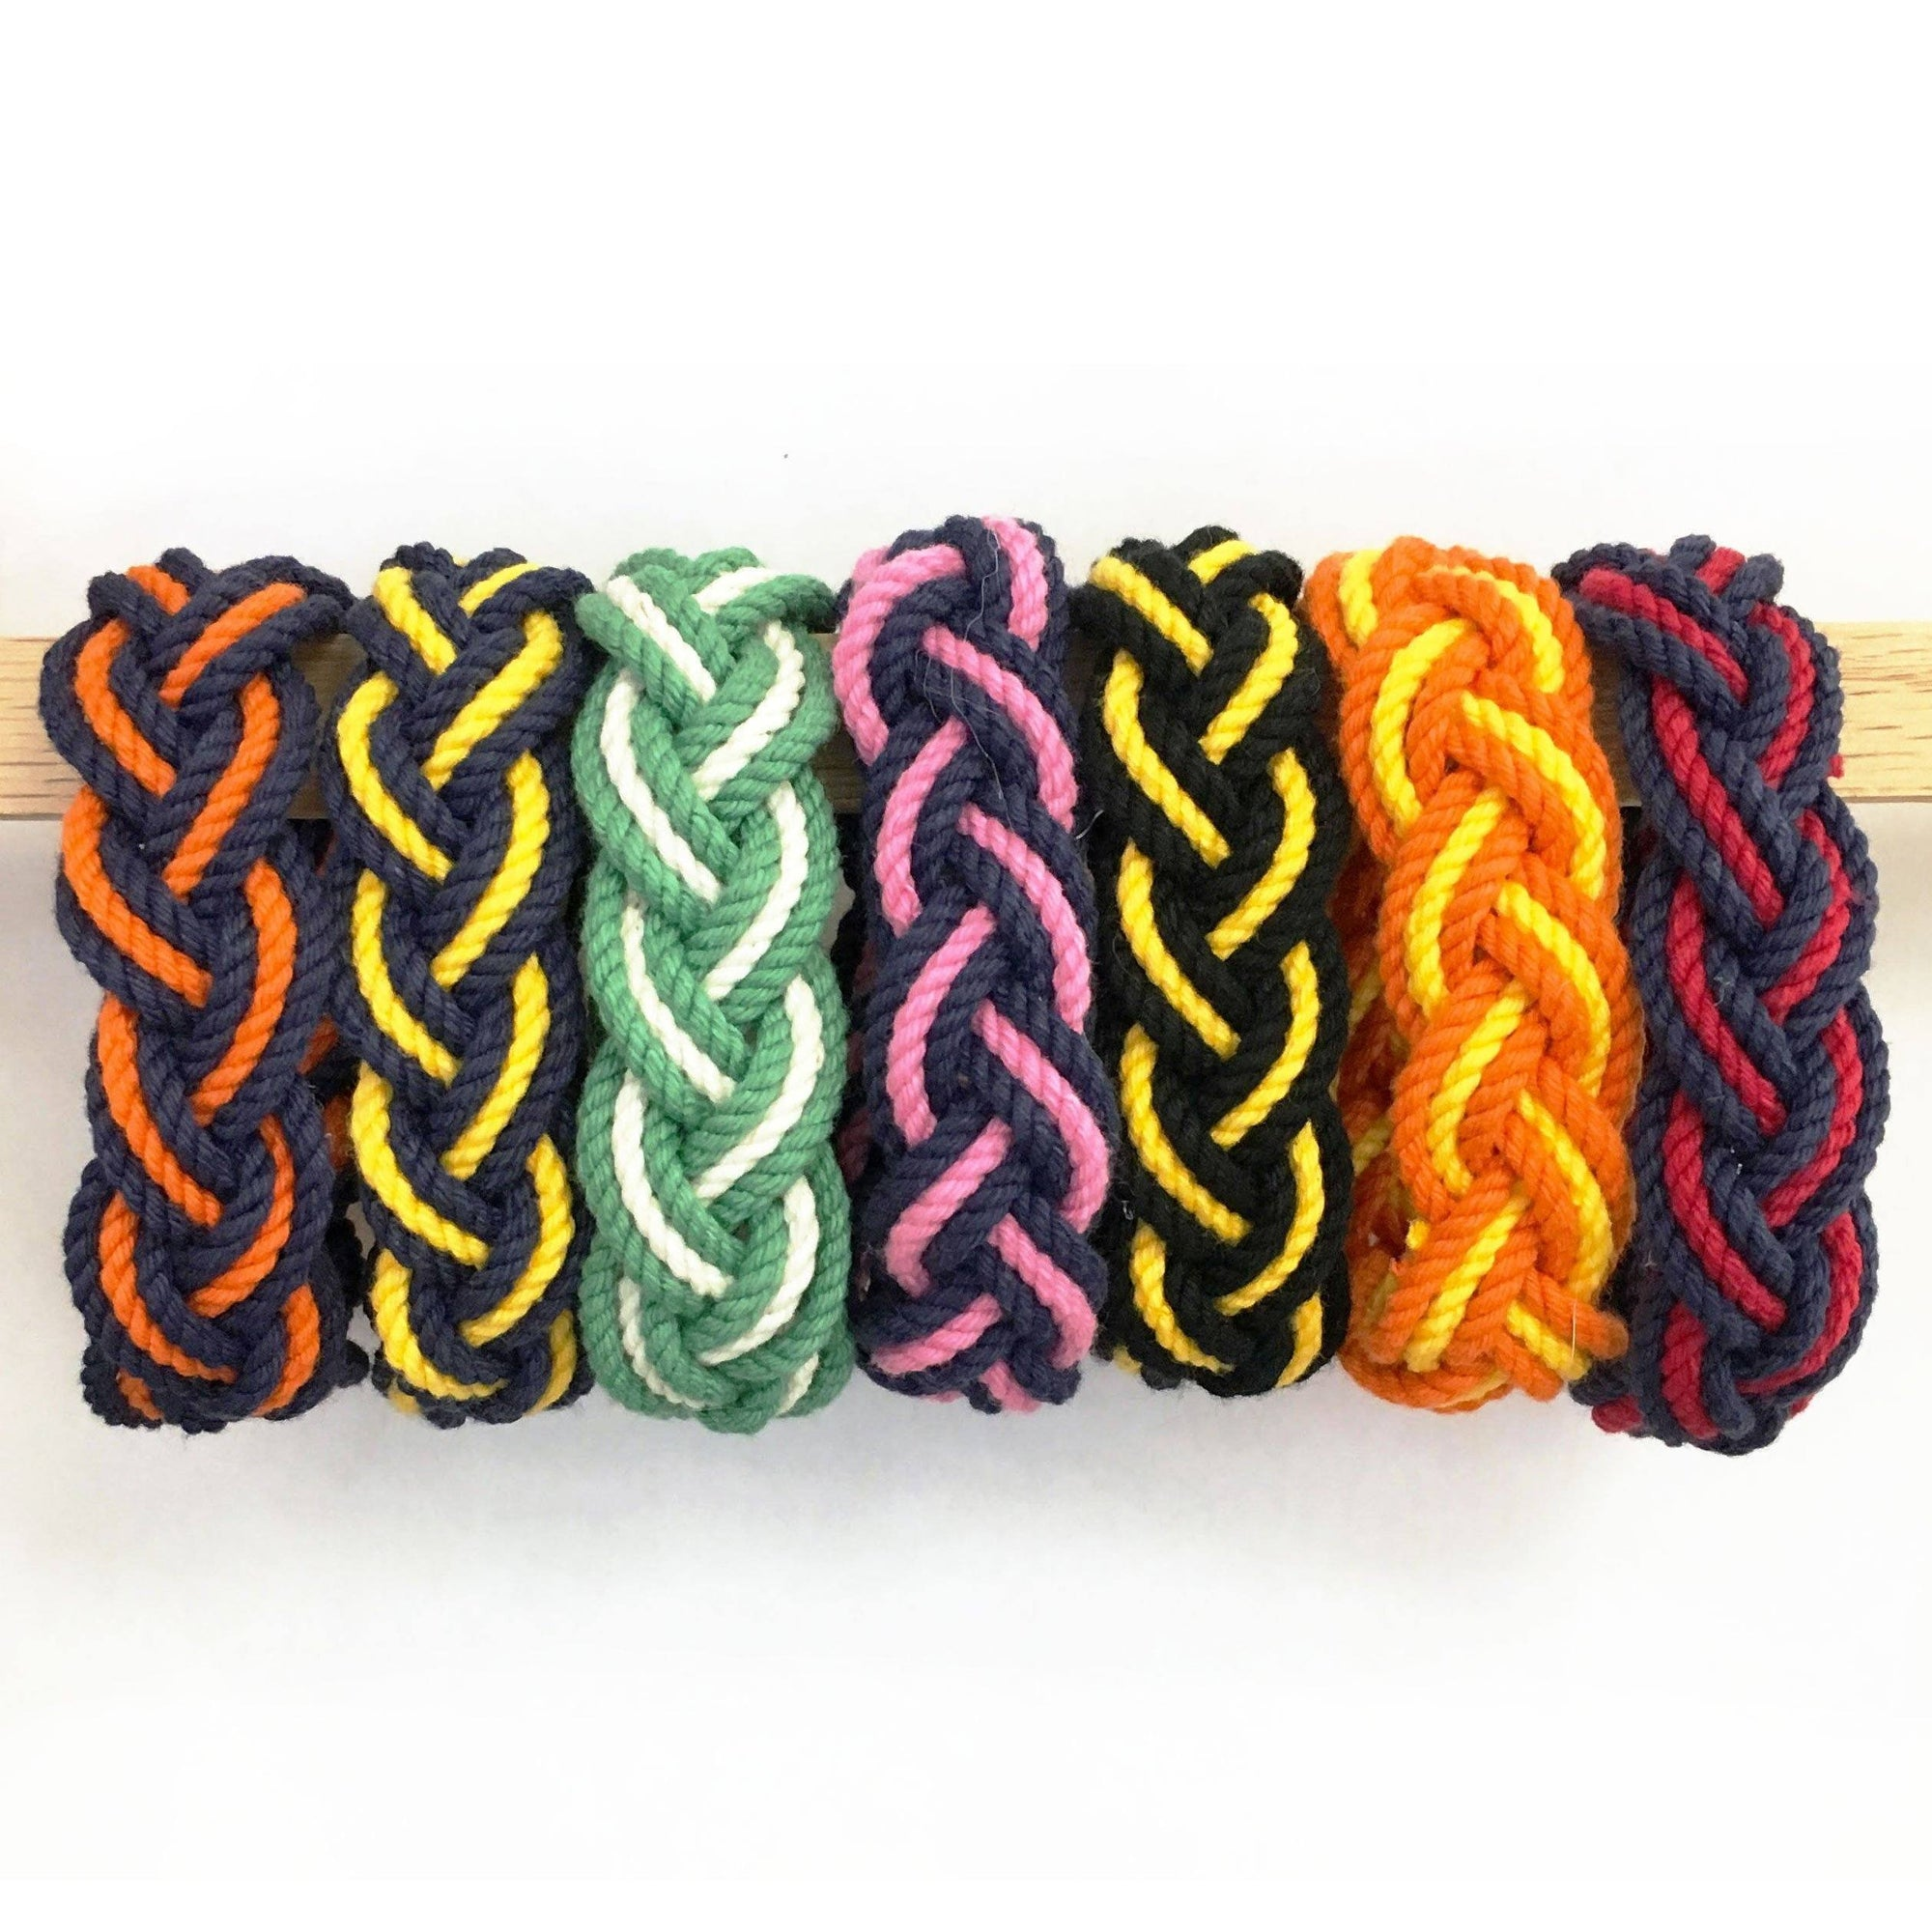 Nautical Striped Sailor Bracelet, Custom Colors - Choose Your Own Handmade sailor knot American Made in Mystic, CT $ 4.80